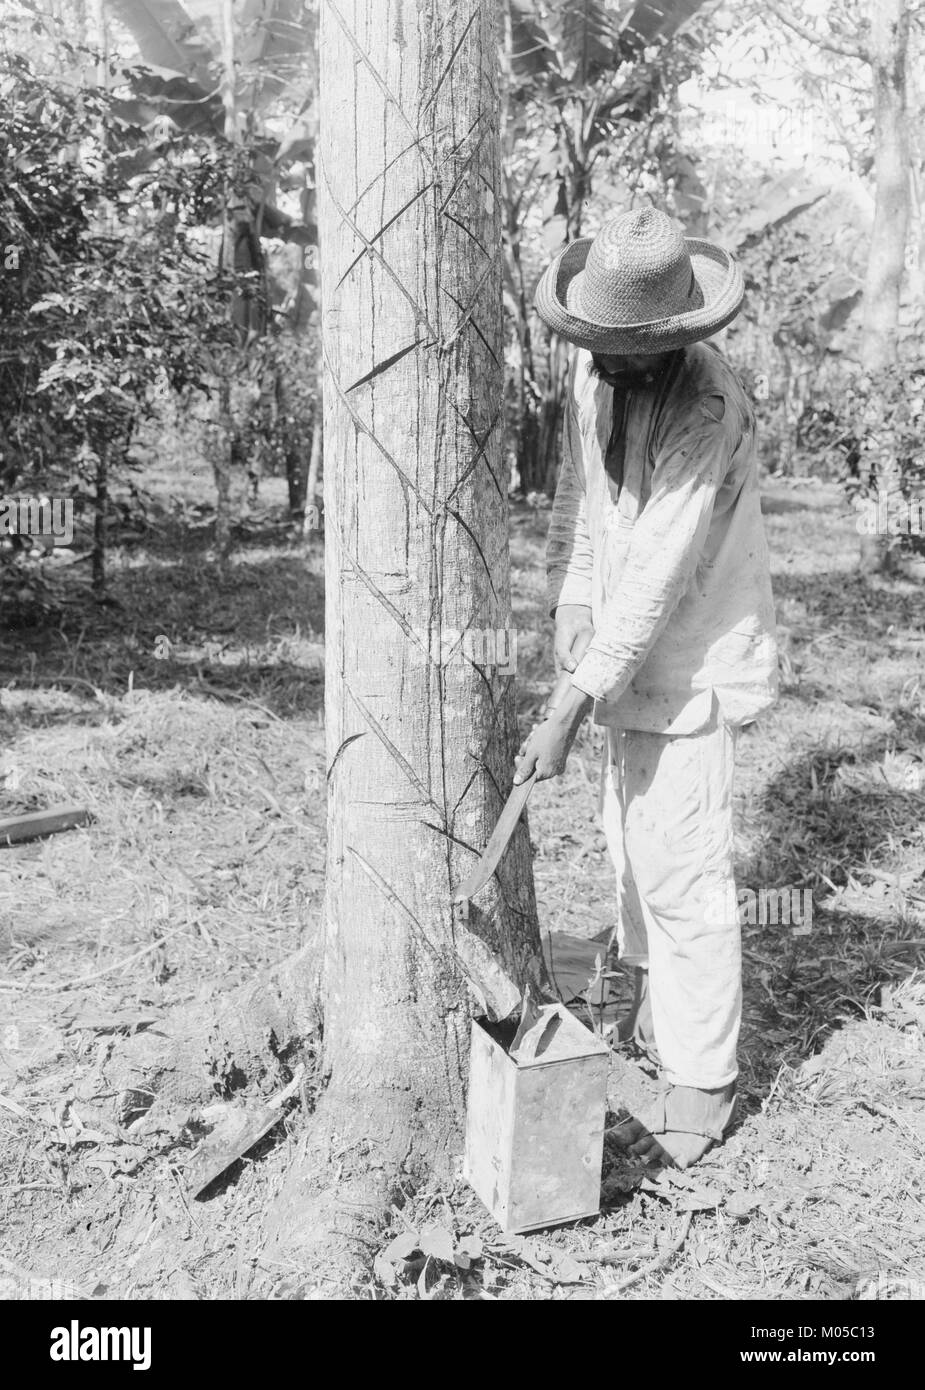 Tapping Rubber Tree with machete (Old Way) - Stock Image